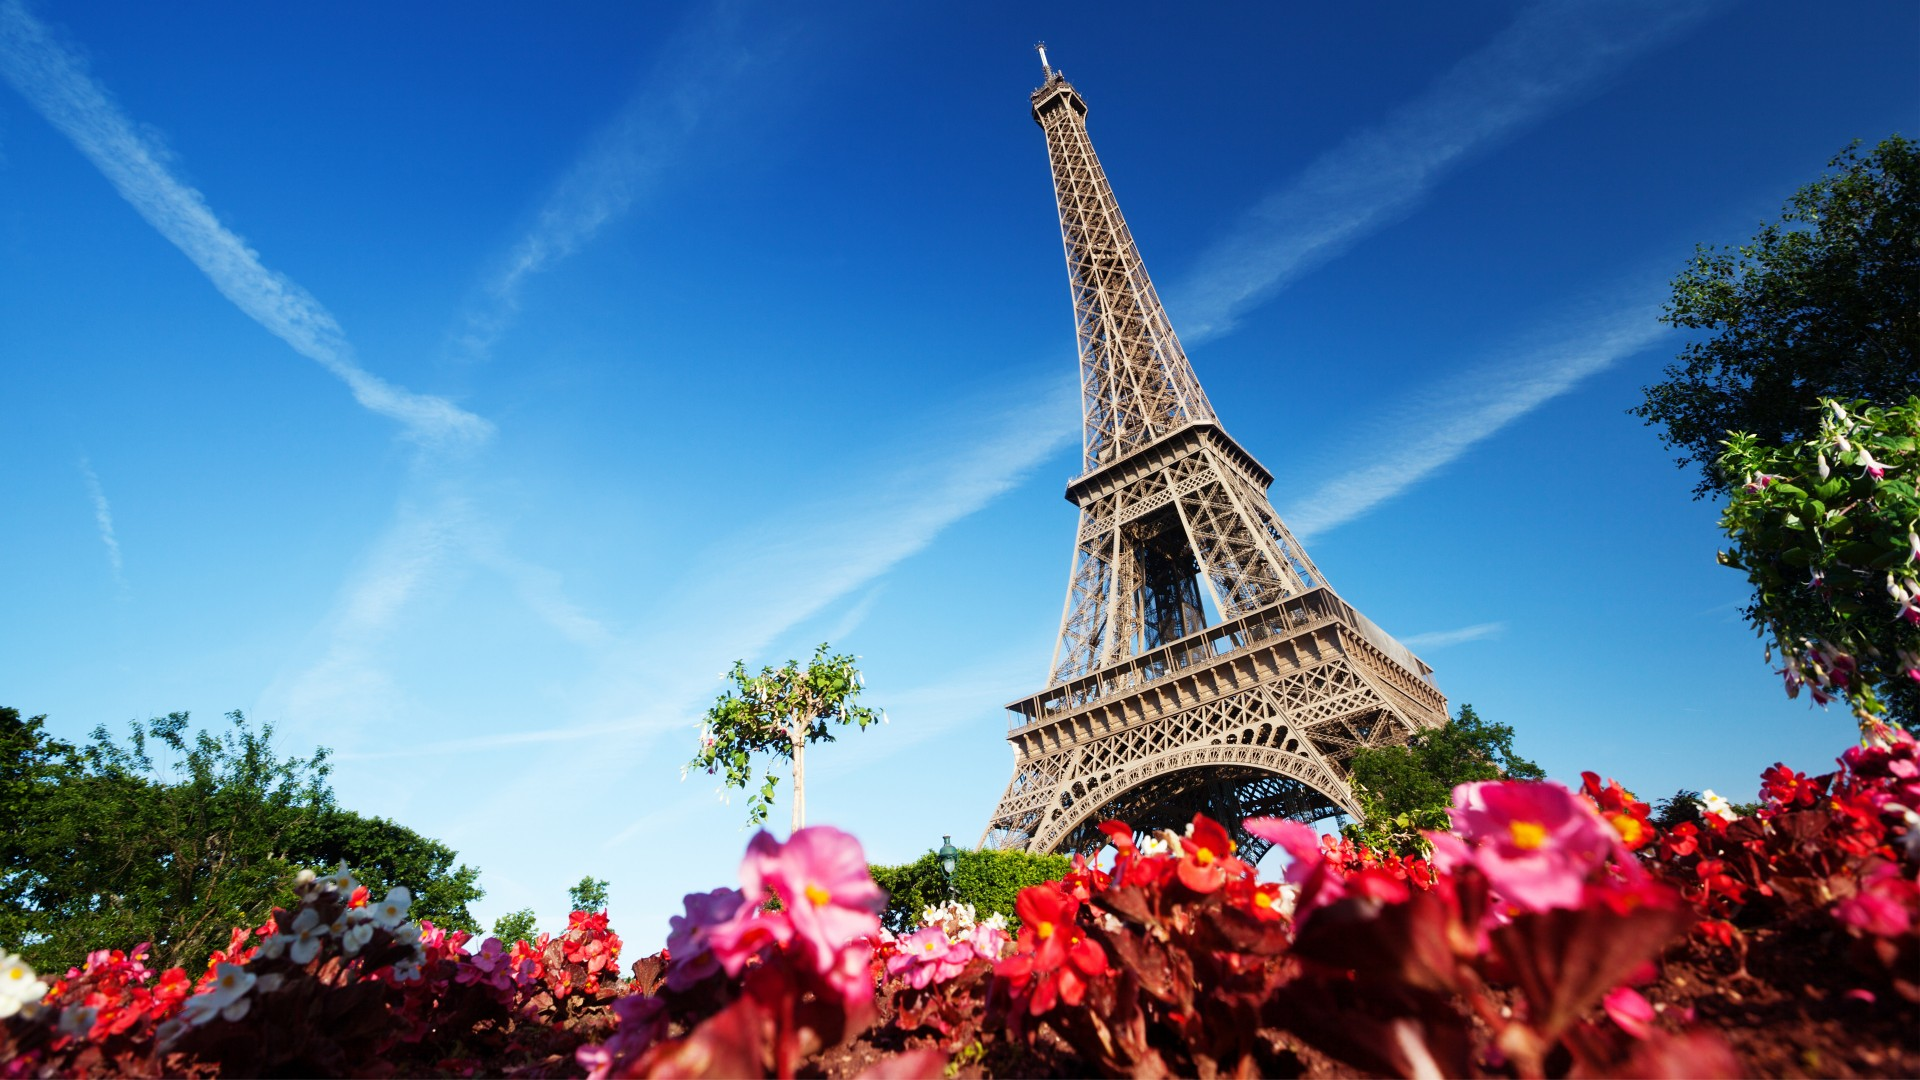 eiffel_tower_paris_france-1920x1080